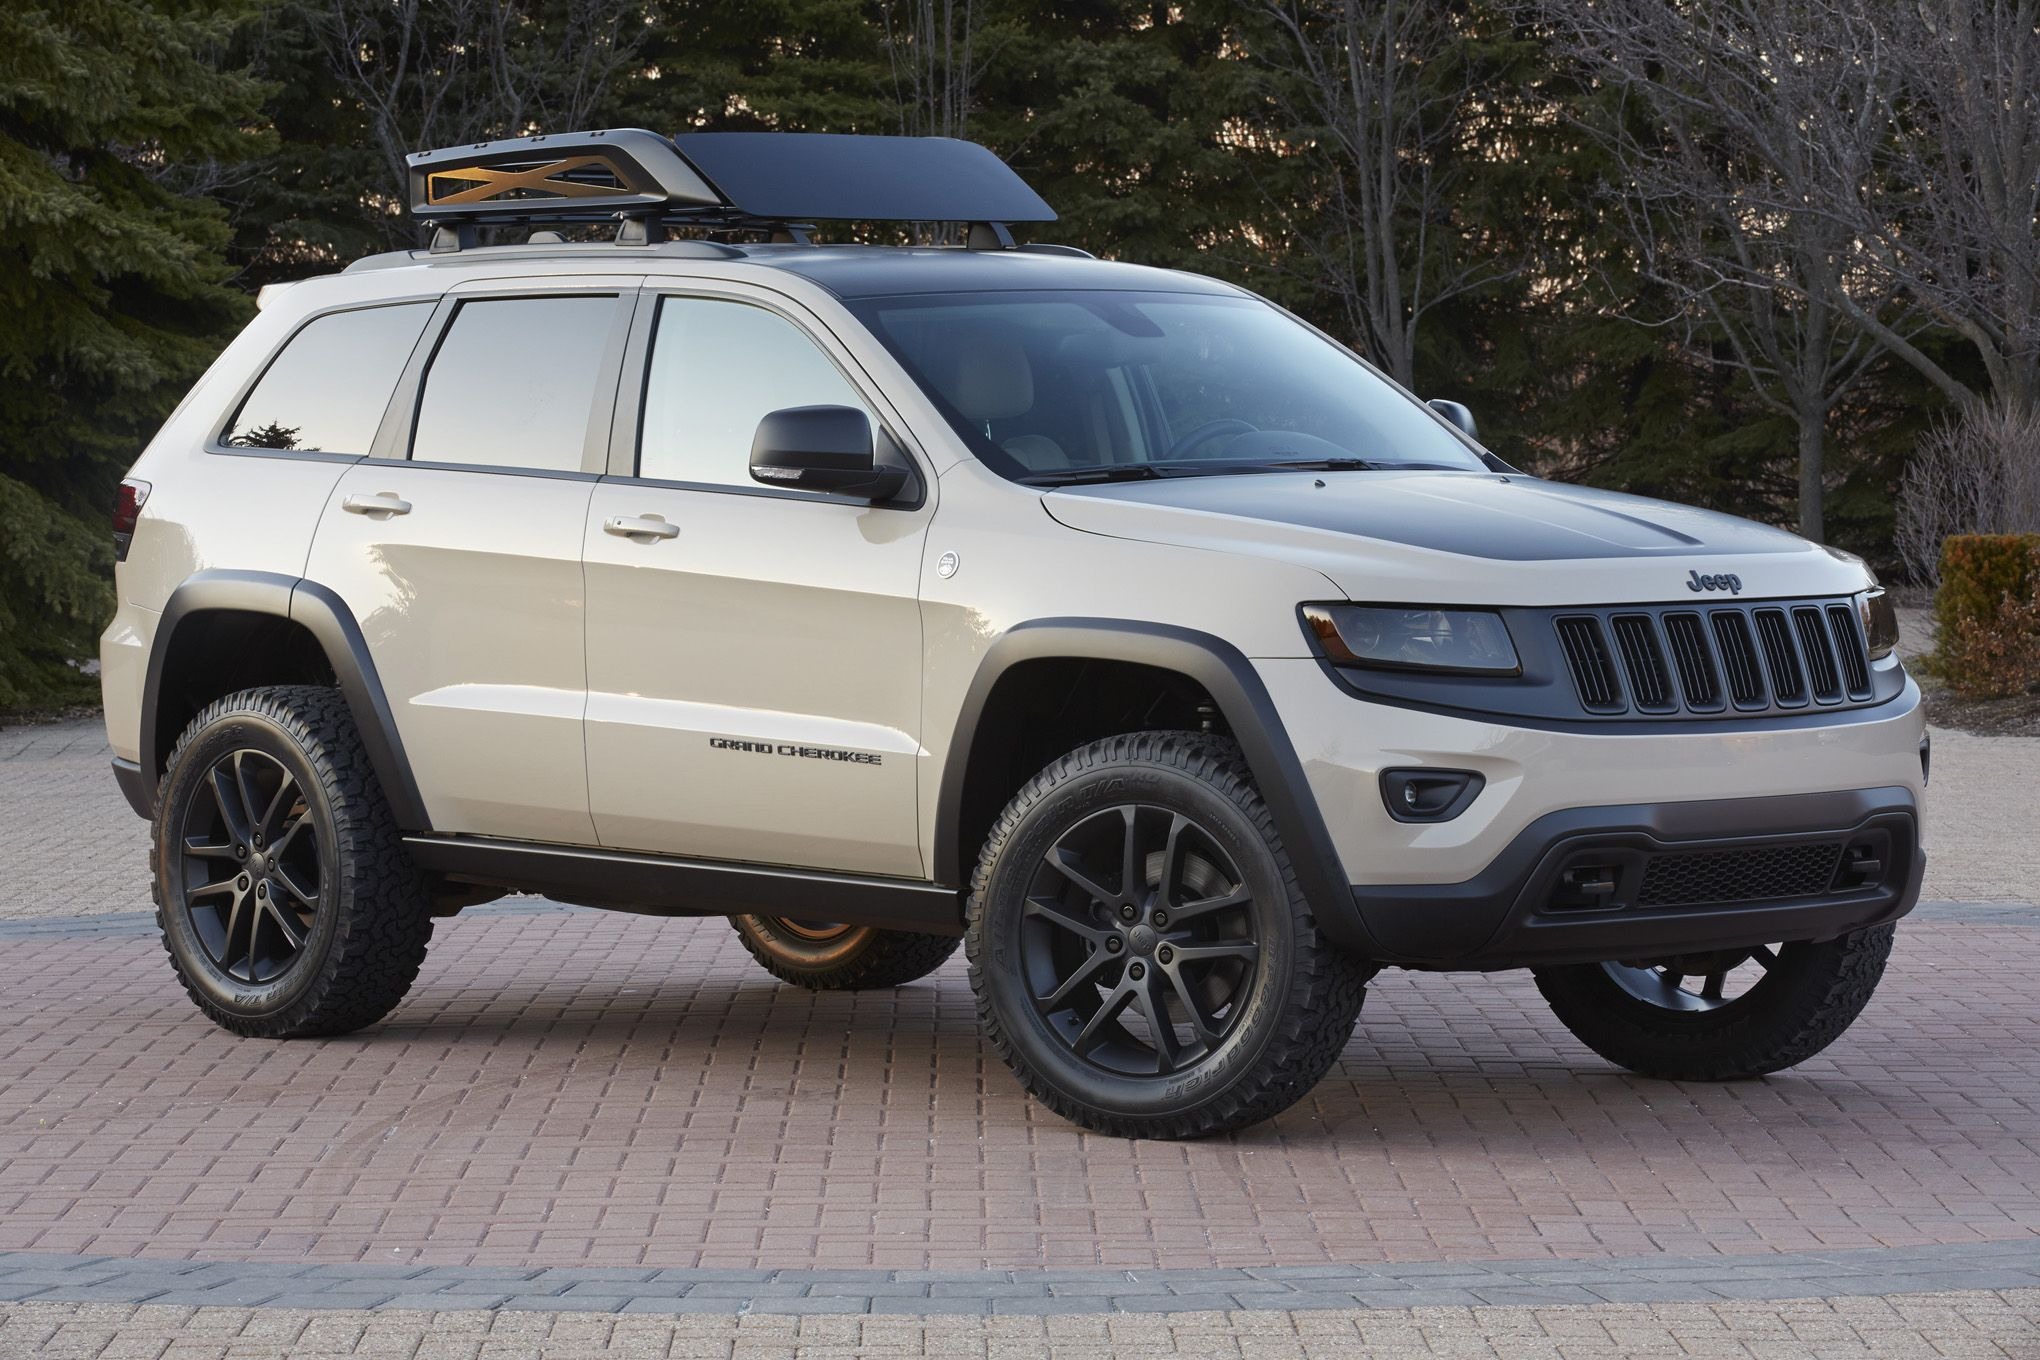 Jeep Grand Cherokee Ecodiesel Trail Warrior Concept Vehicle 2014